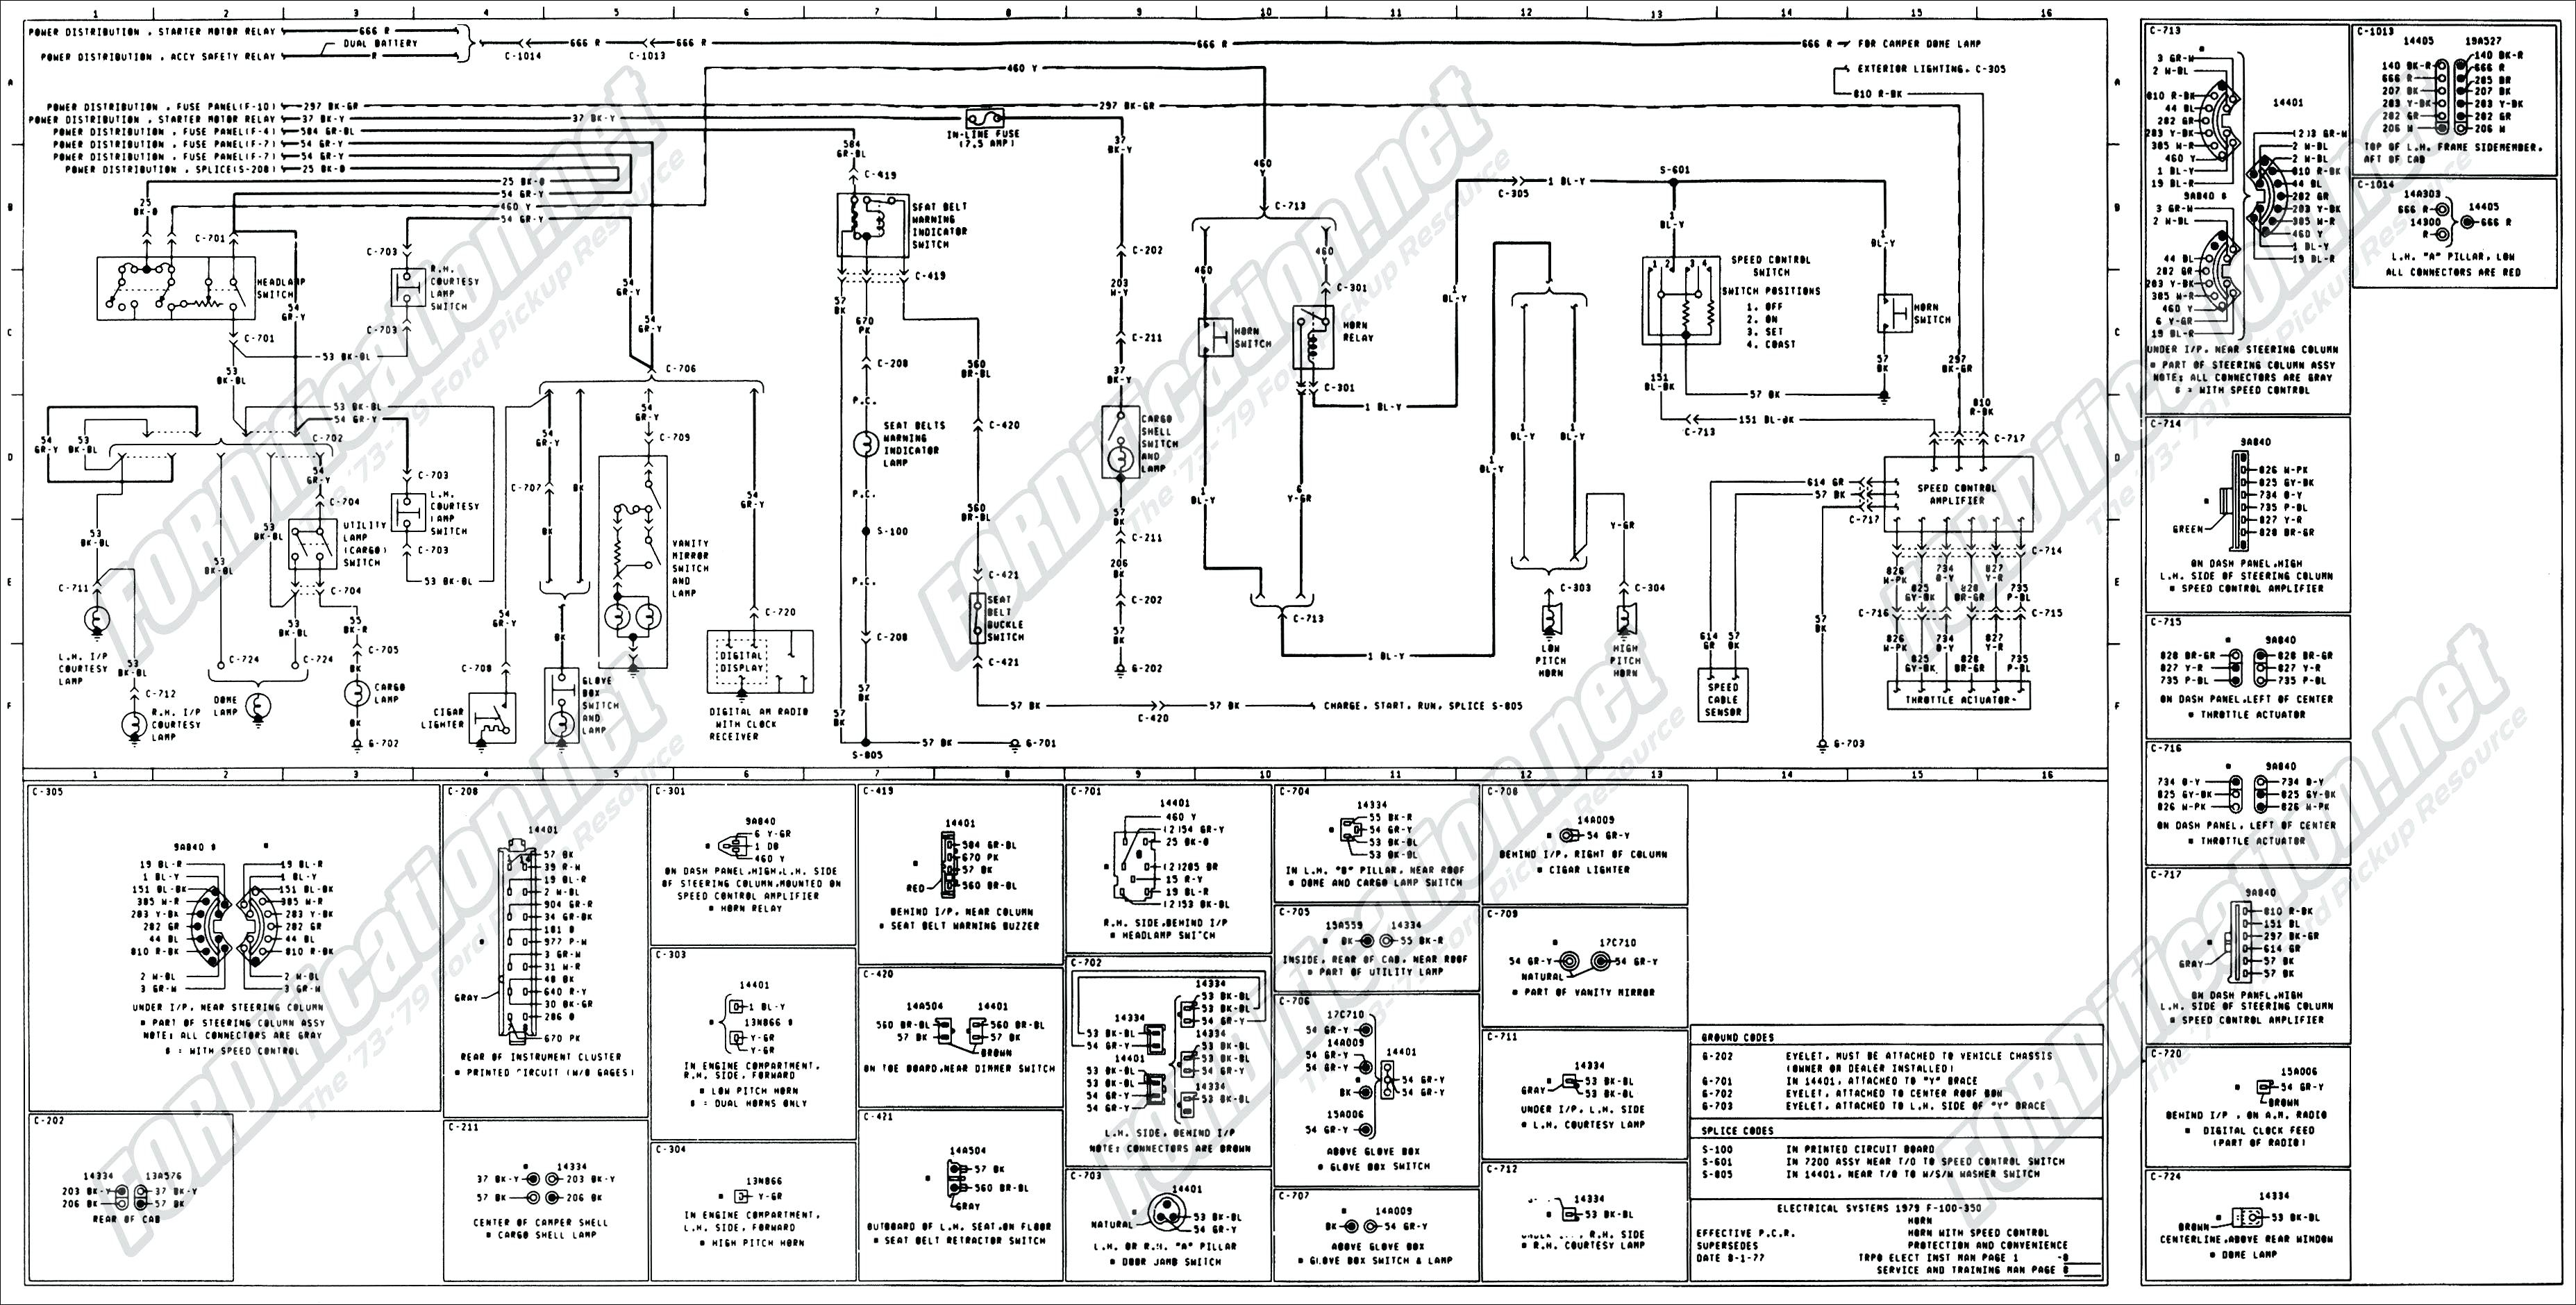 Cat C7 Engine Diagram Full House